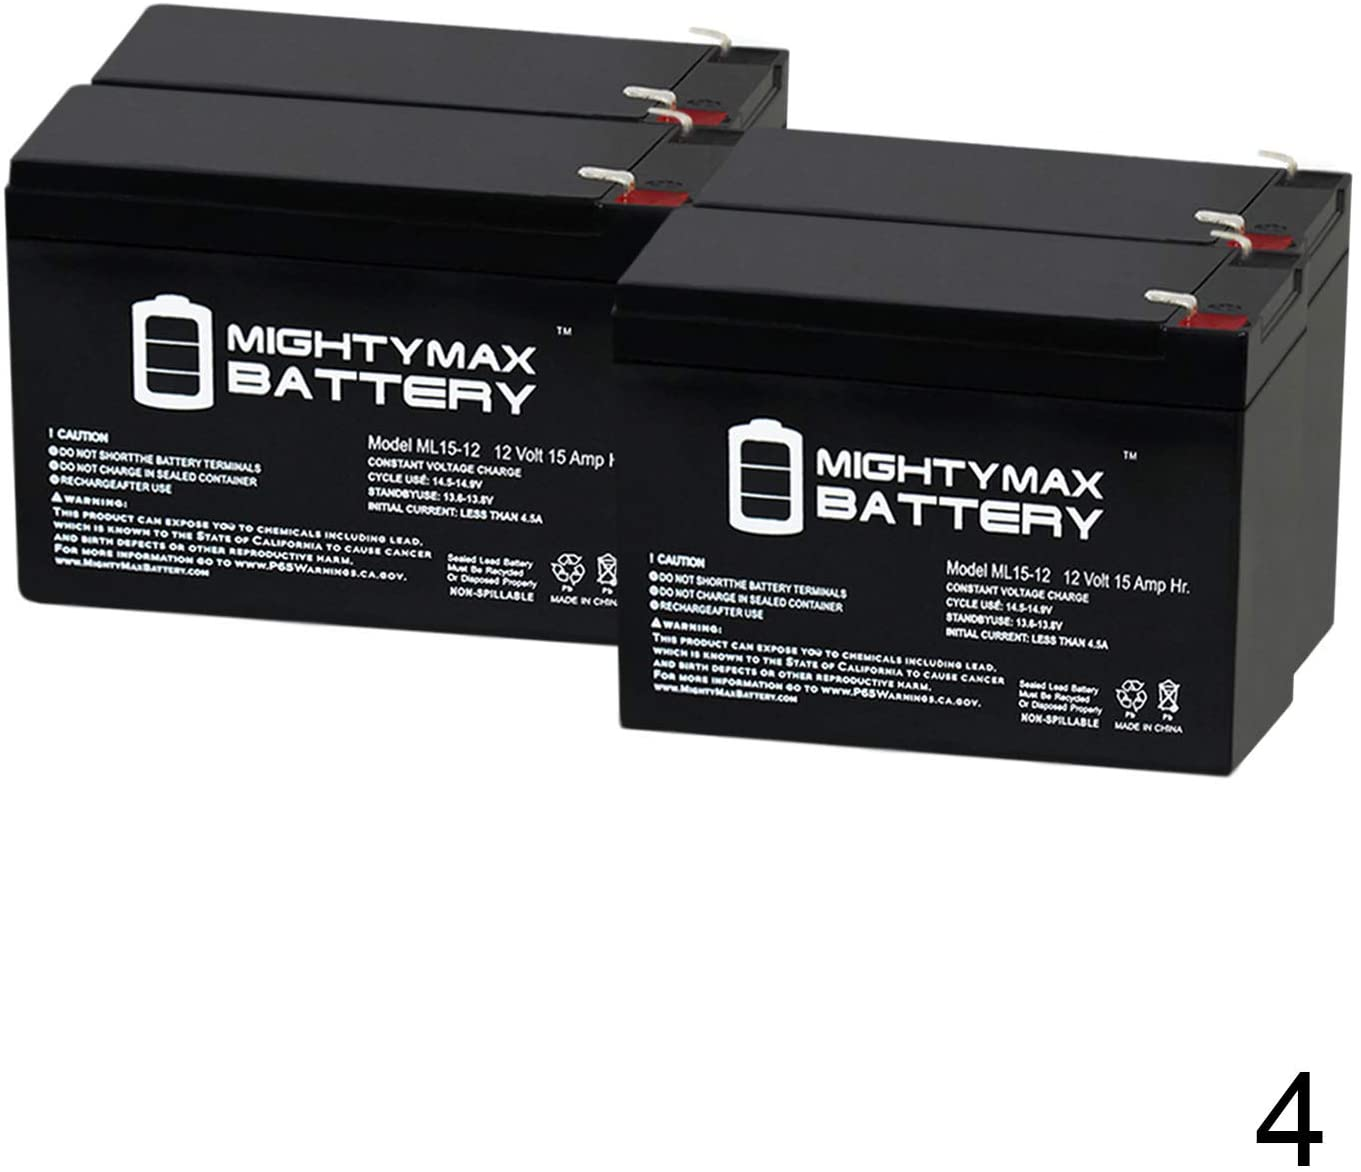 Mighty Max Battery ML15-12 12V 15AH F2 Wheelchair Scooter Btty Replaces Interstate DCM0012-4 Pack Brand Product